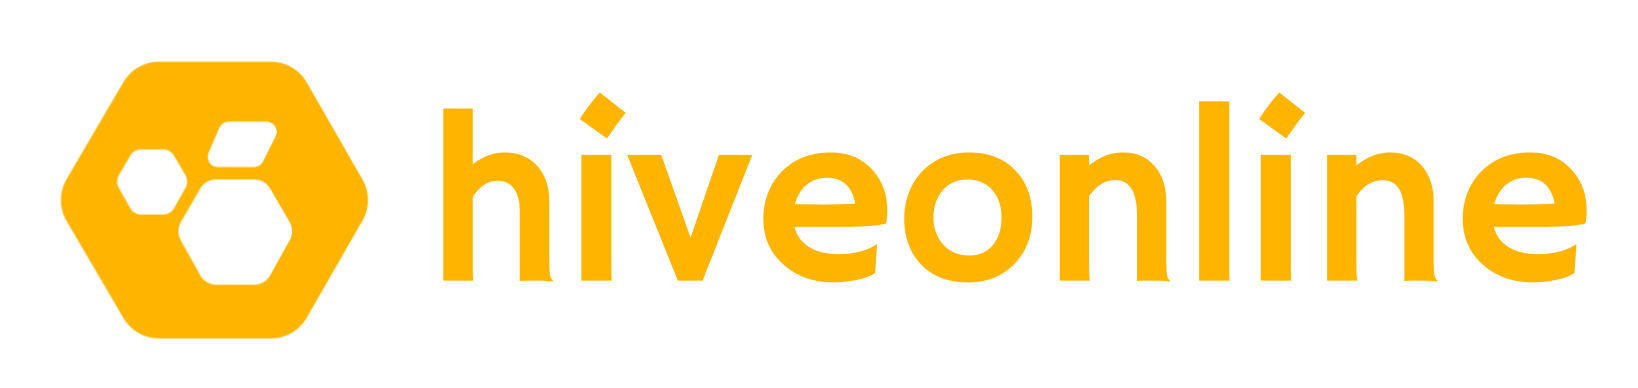 hiveonline - helping small businesses to thrive